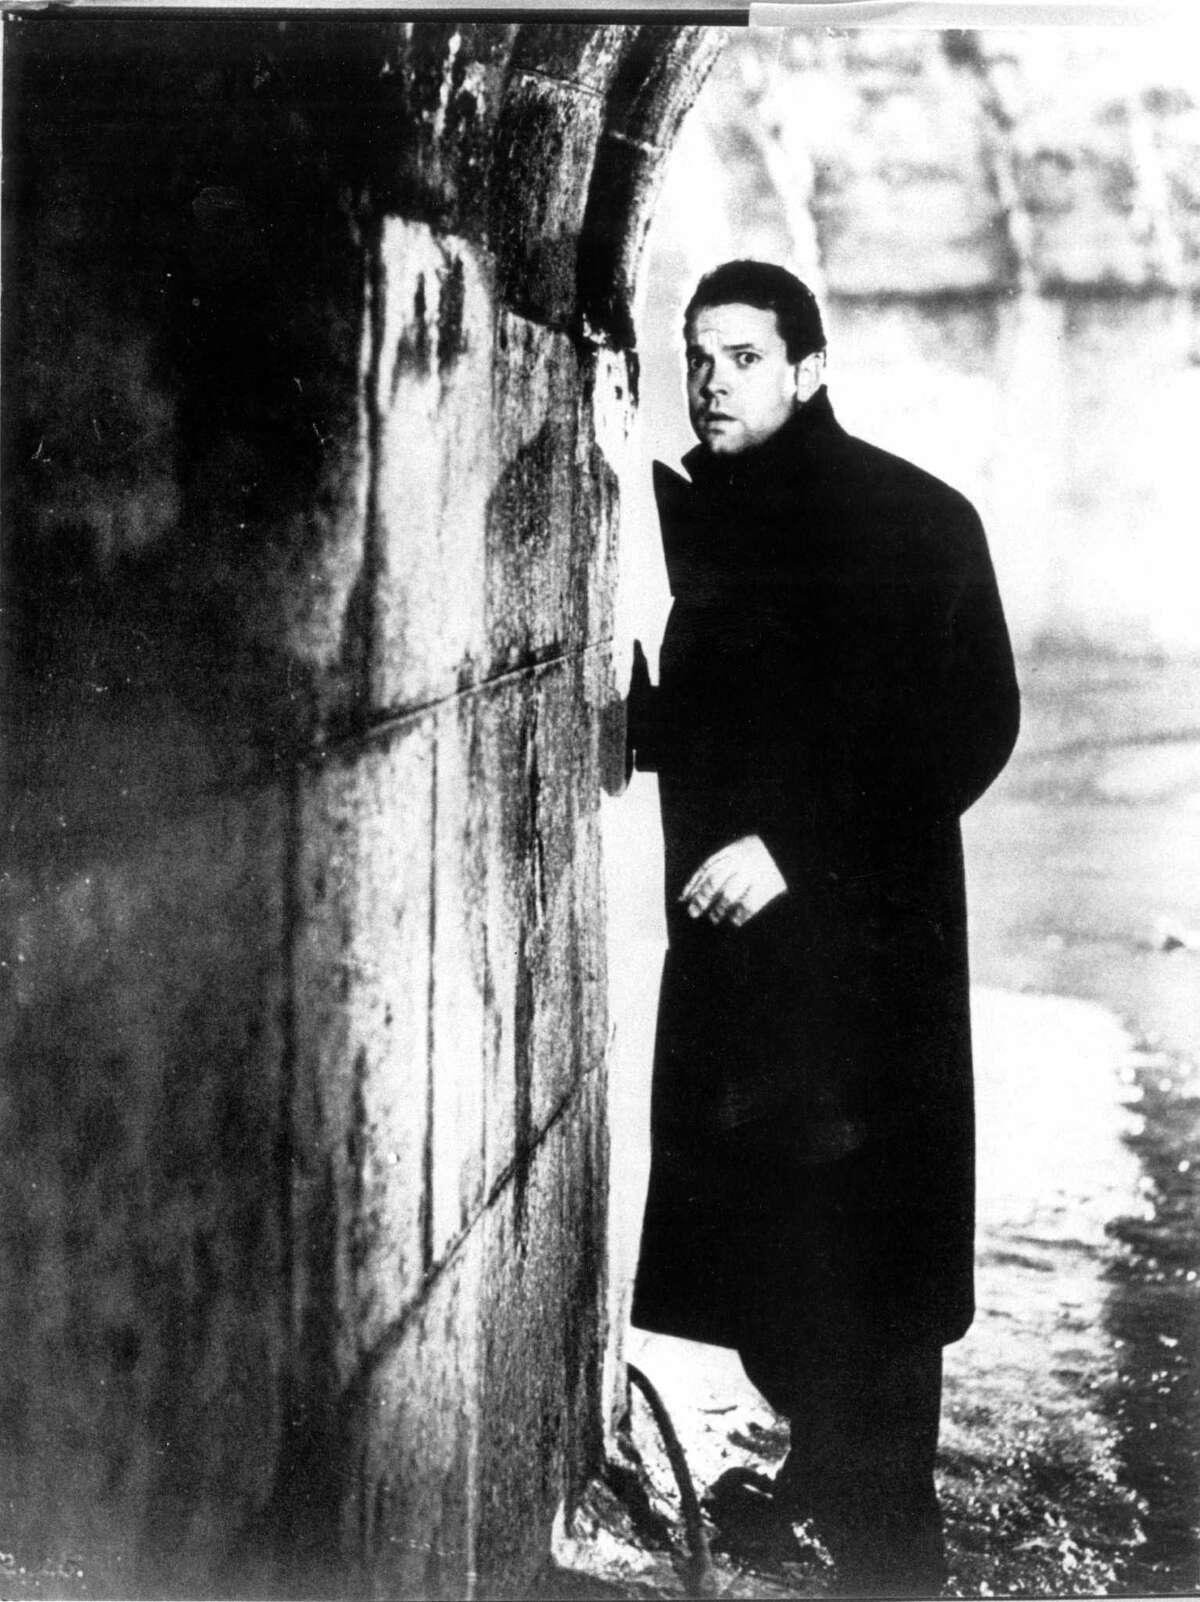 """Orson Welles played opportunist Harry Lime in """"The Third Man."""" As an actor, Welles could be occasionally great and sometimes heavy-handed."""